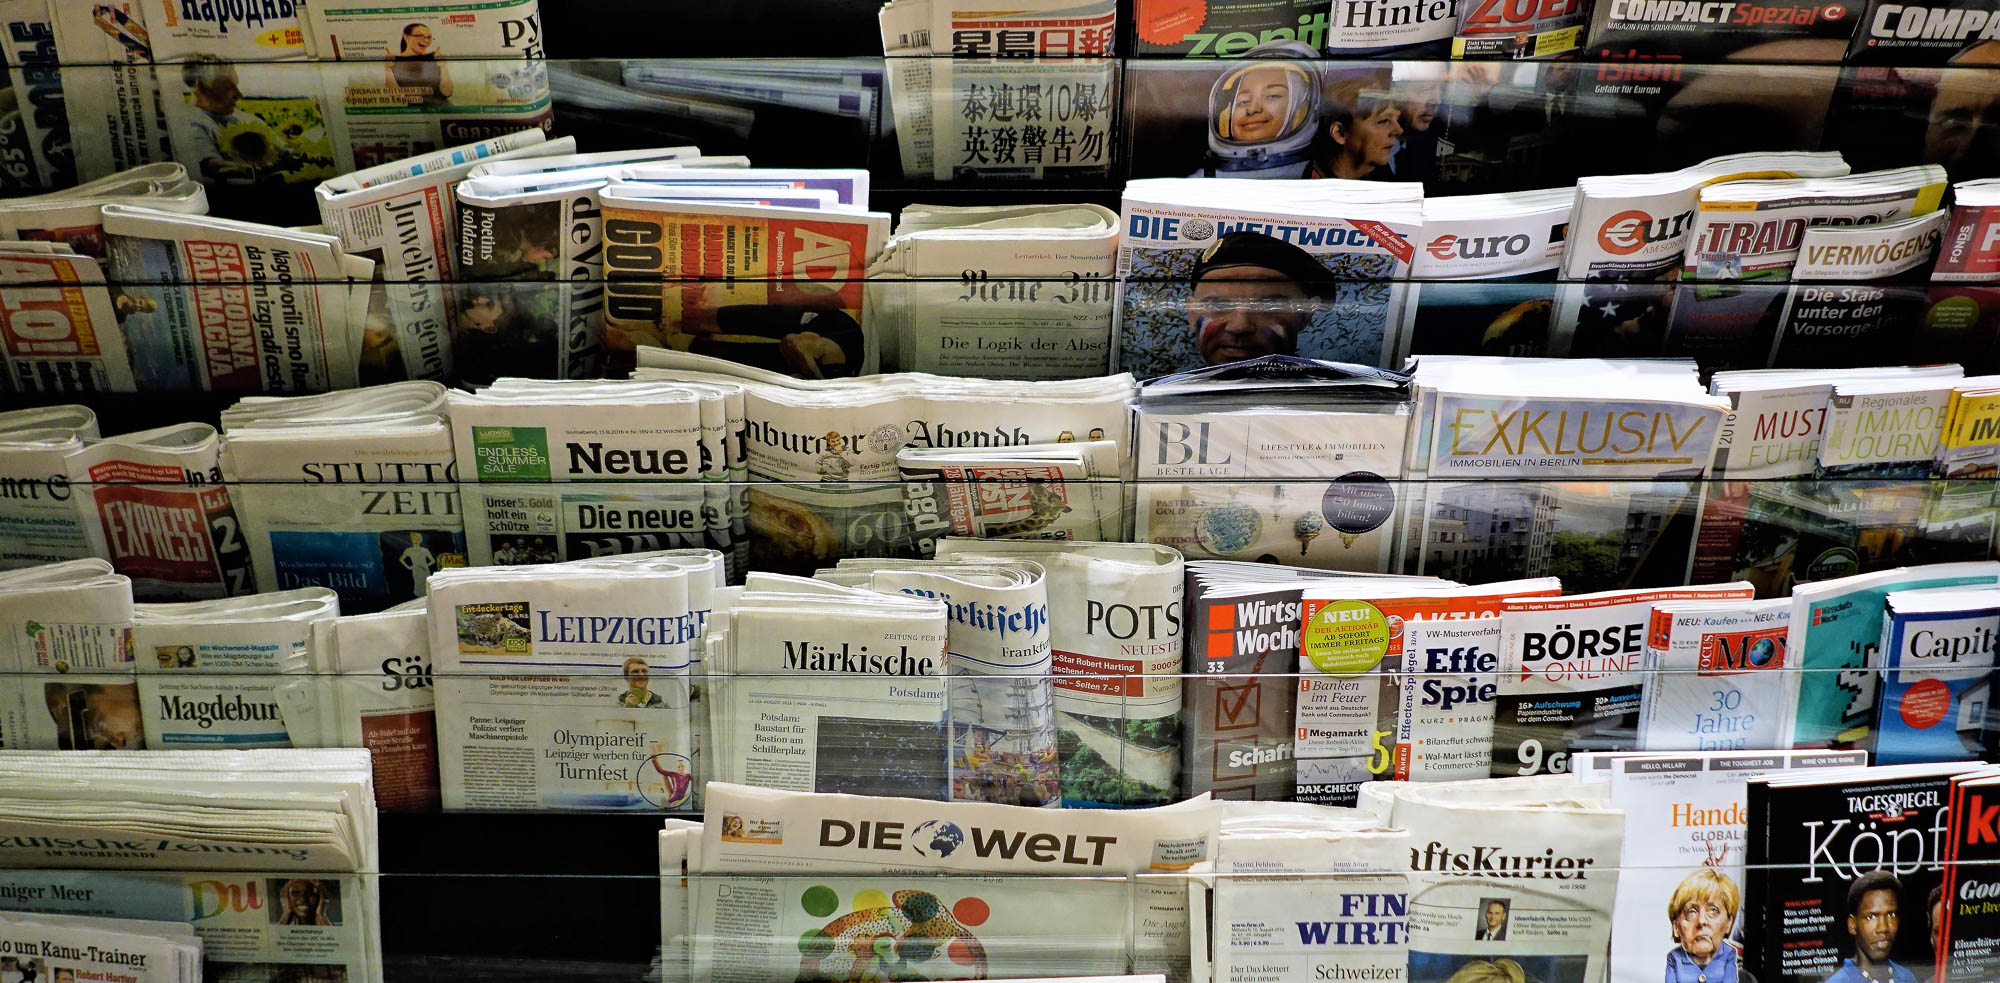 Berlin, Germany - August 2016: Colorful and interesting collection of european newspapers, periodicals, magazines in newsstand rack. Editorial credit: P Gregory / Shutterstock.com.